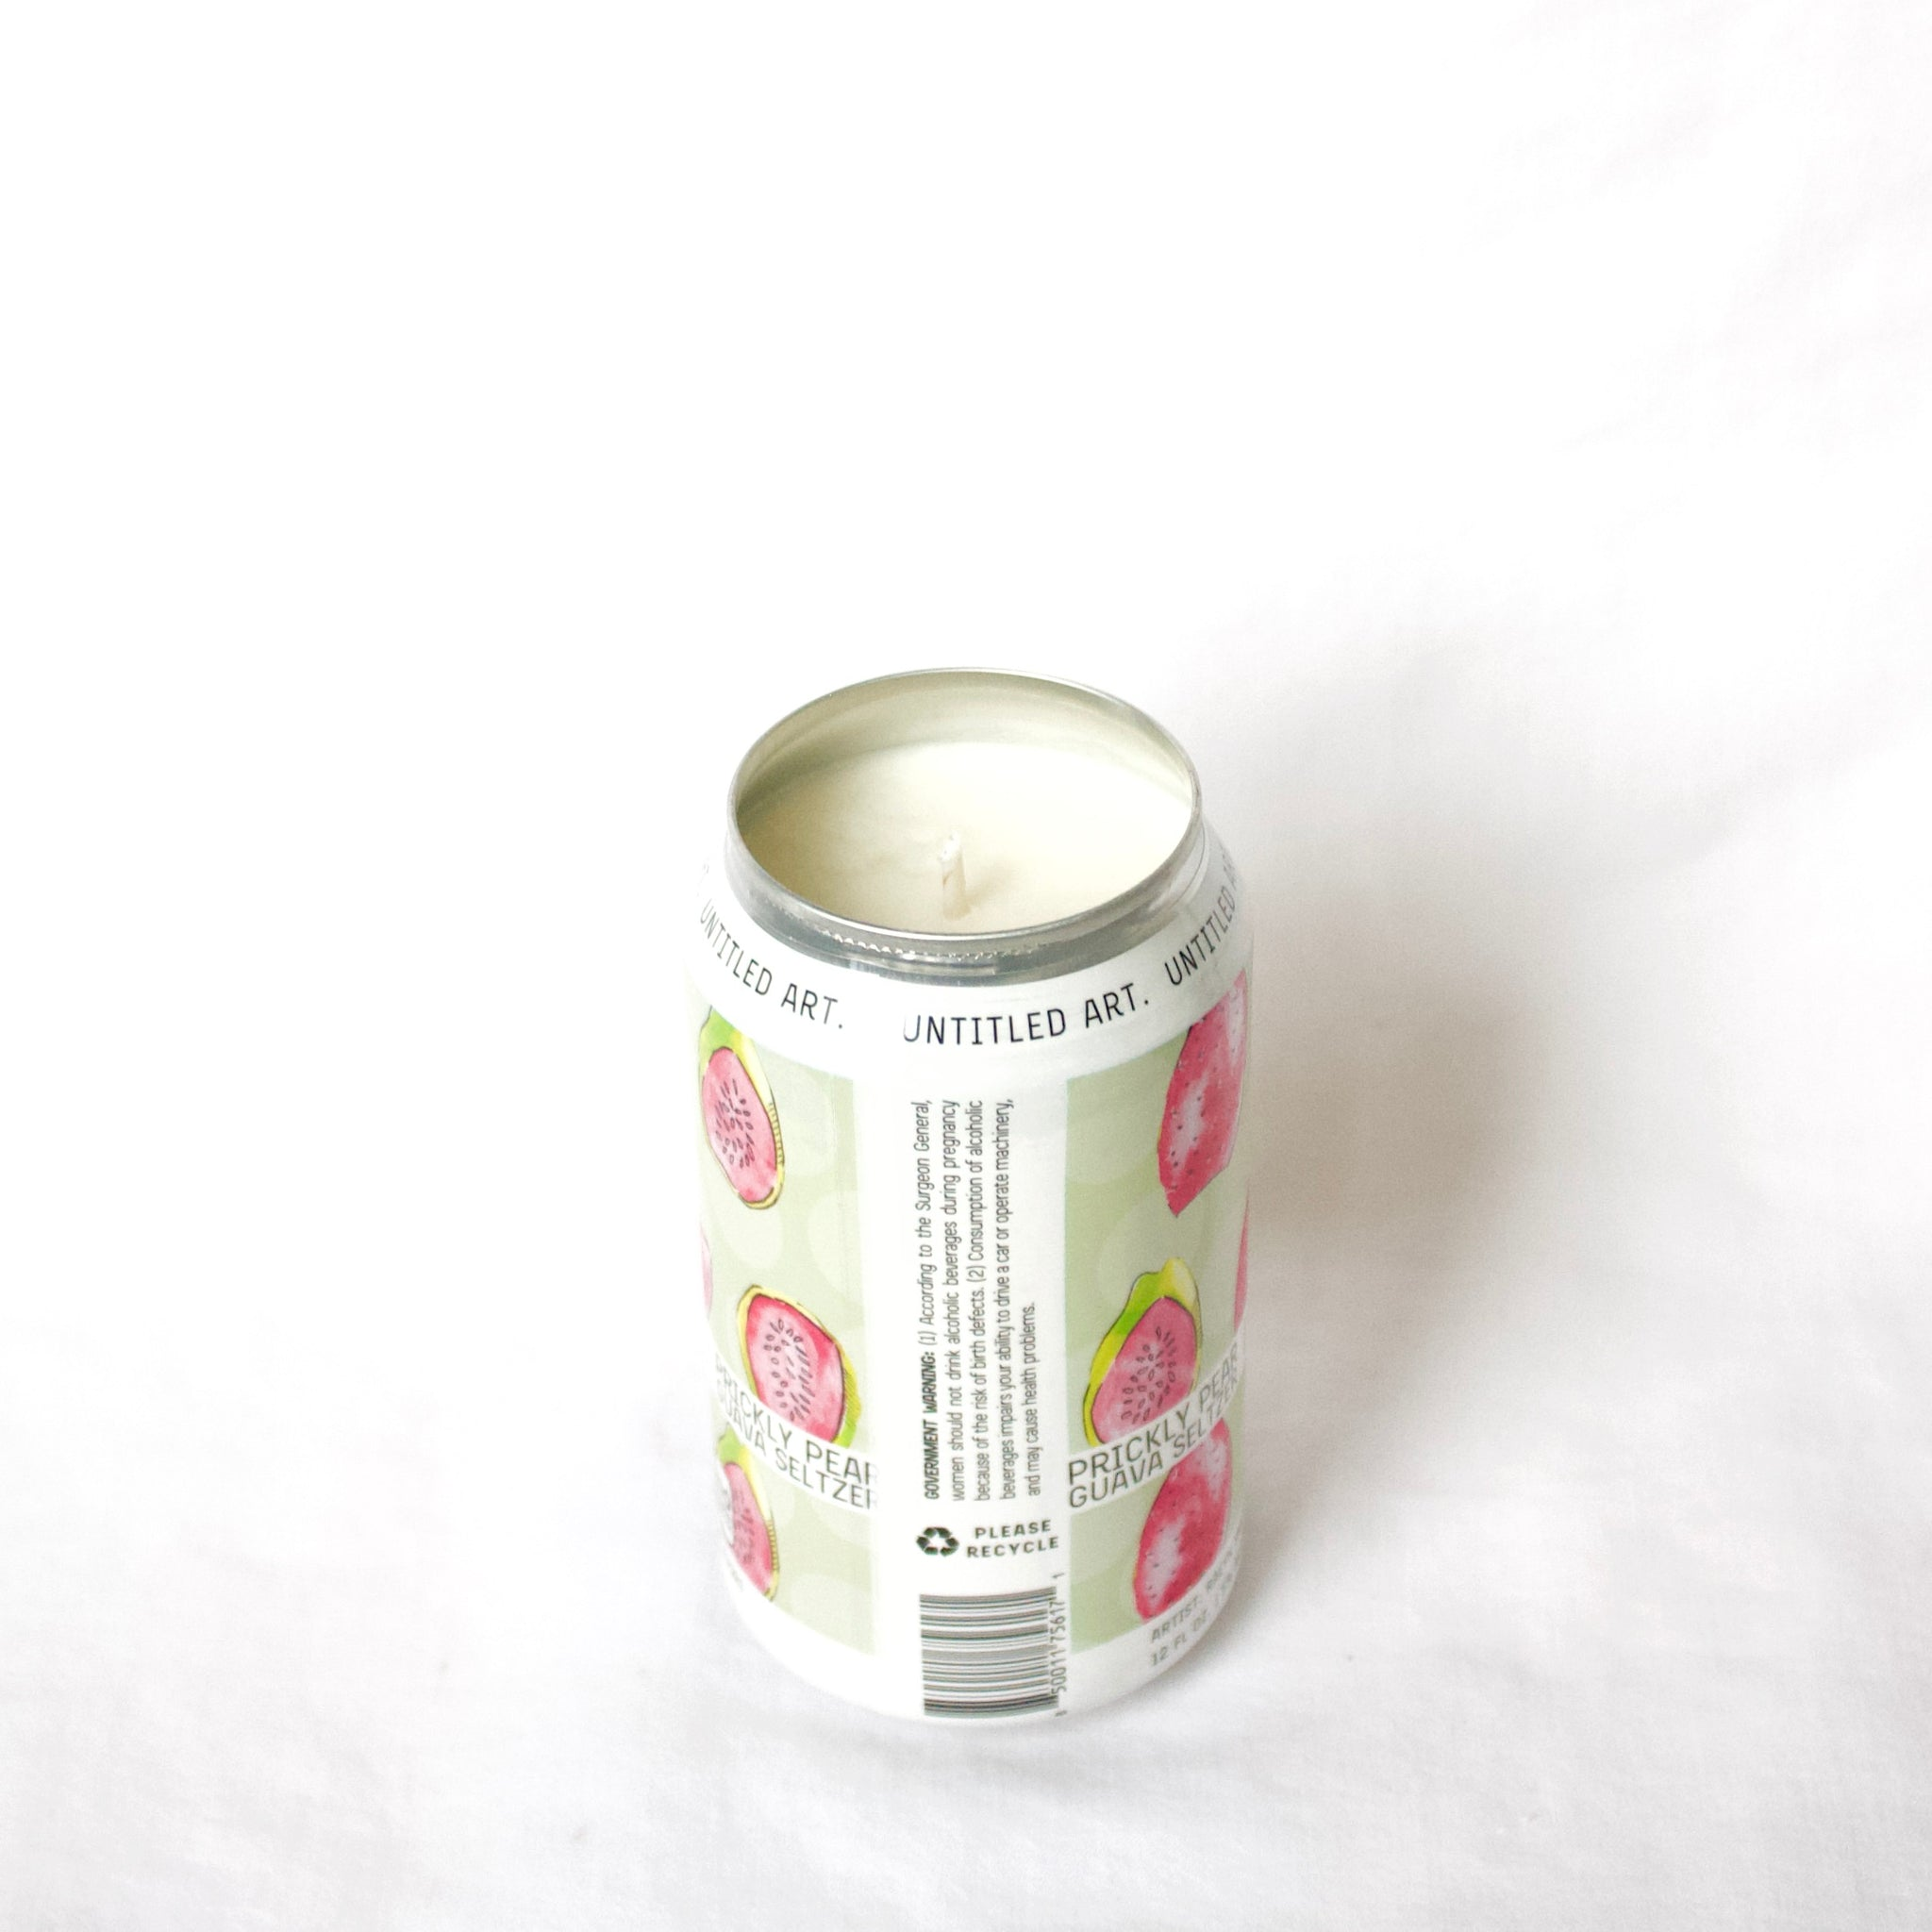 Untitled Art Prickled Pear Guava Candle